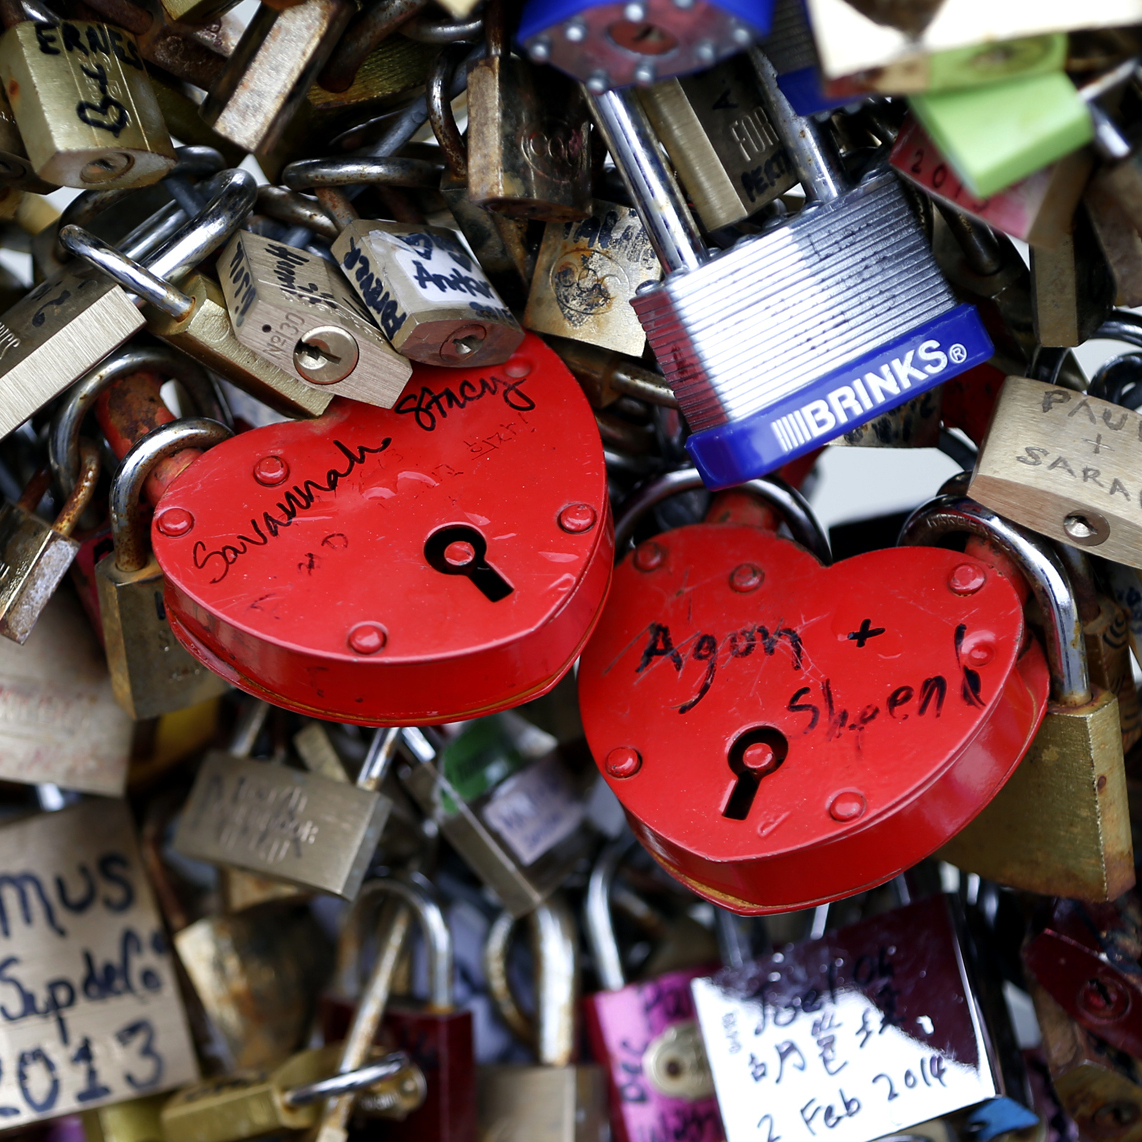 The love lock trend took off in the late 1990s. Le Monde newspaper estimated in February that there were as many as 700,000 locks on the Pont des Arts (shown here on Feb. 13) alone.